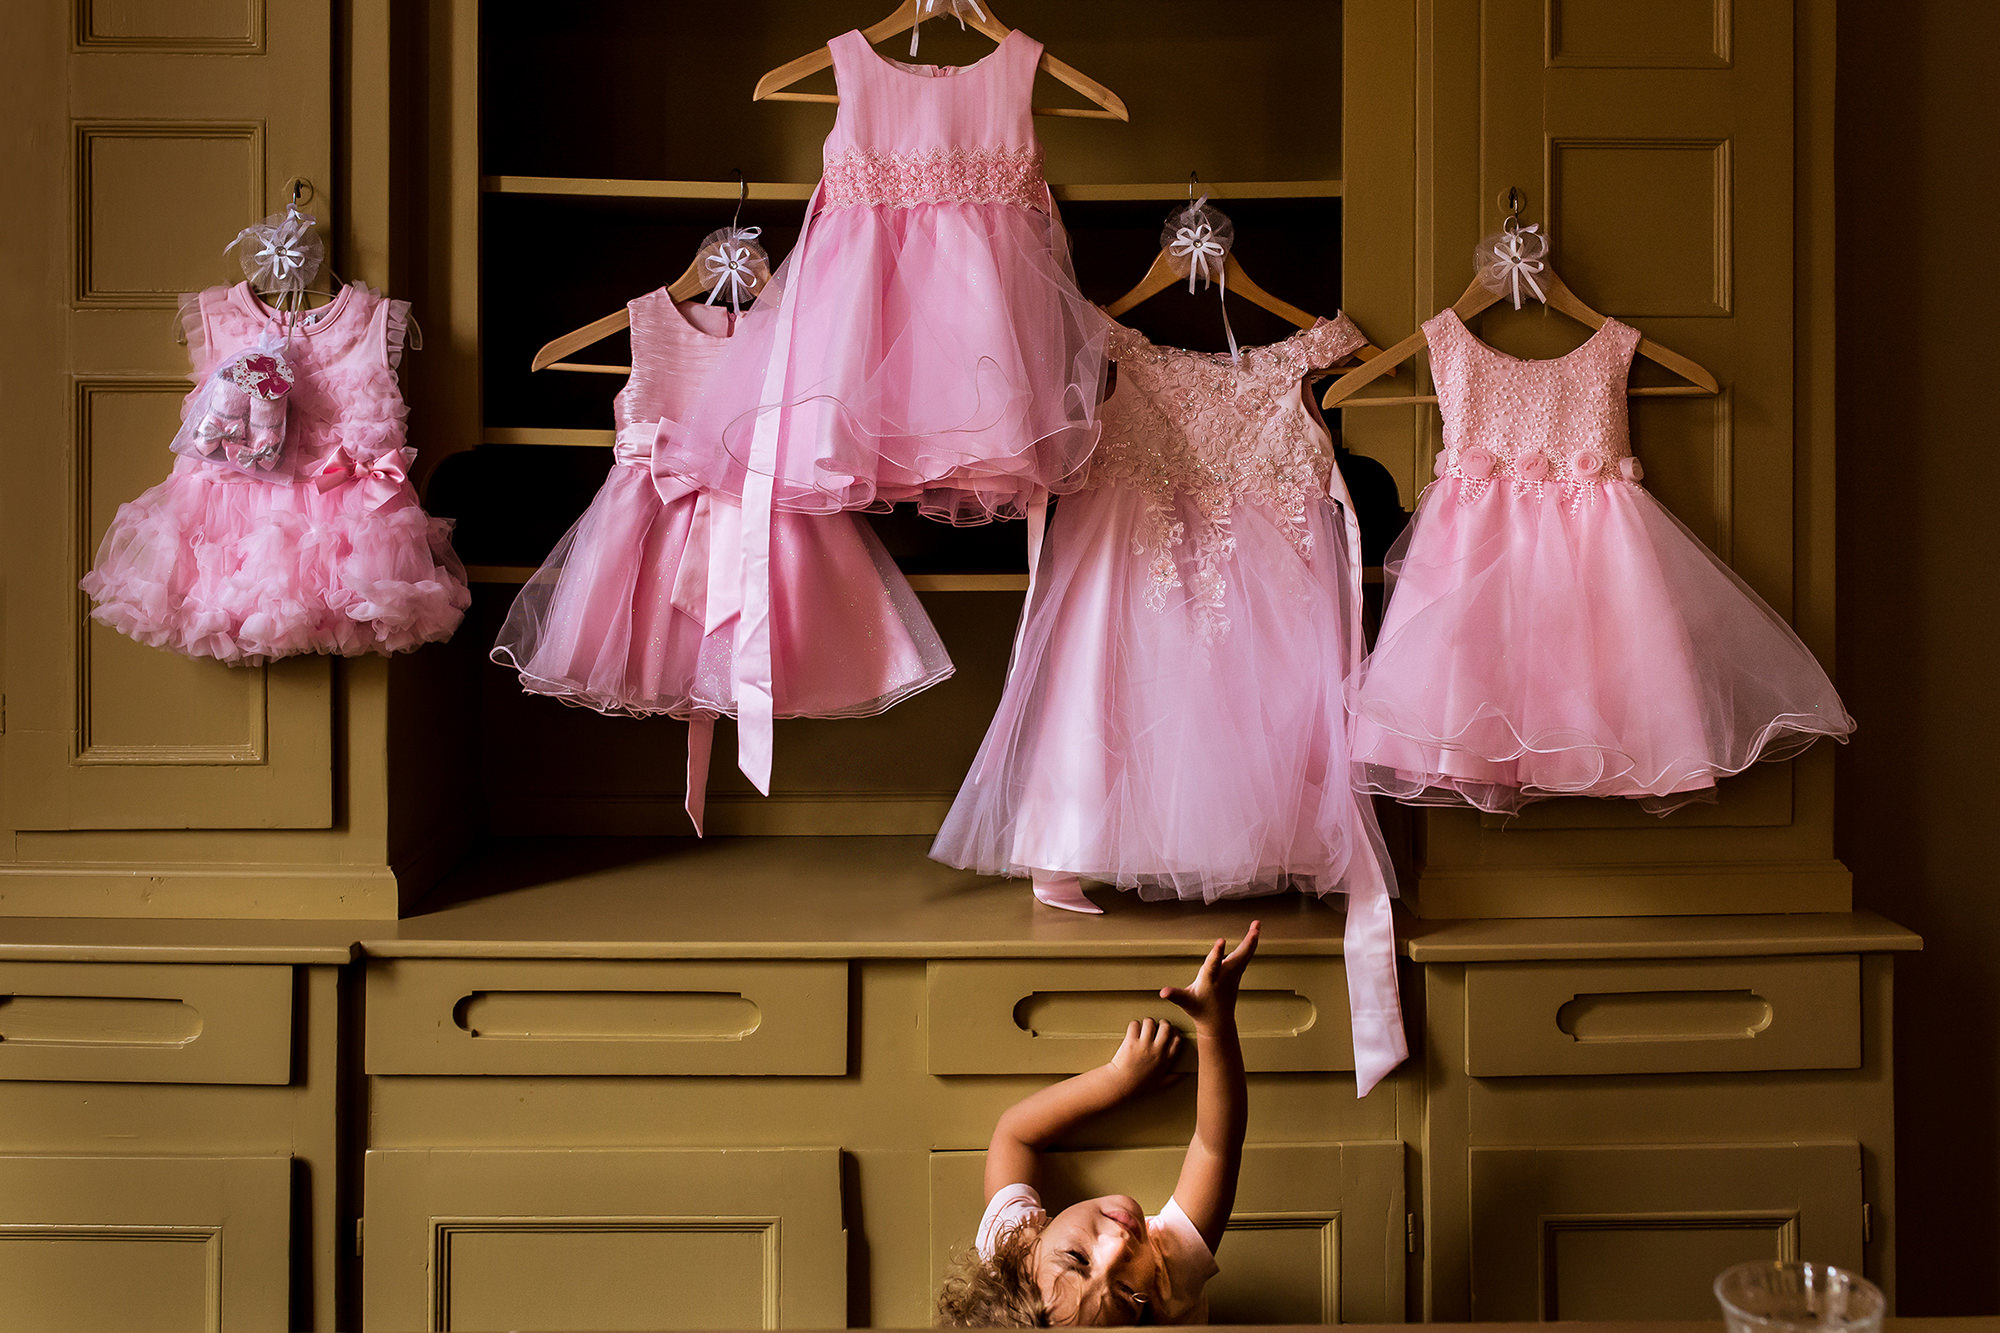 Little girl reaching for hanging pink dresses photo by Fotobelle: Isabelle Hattink